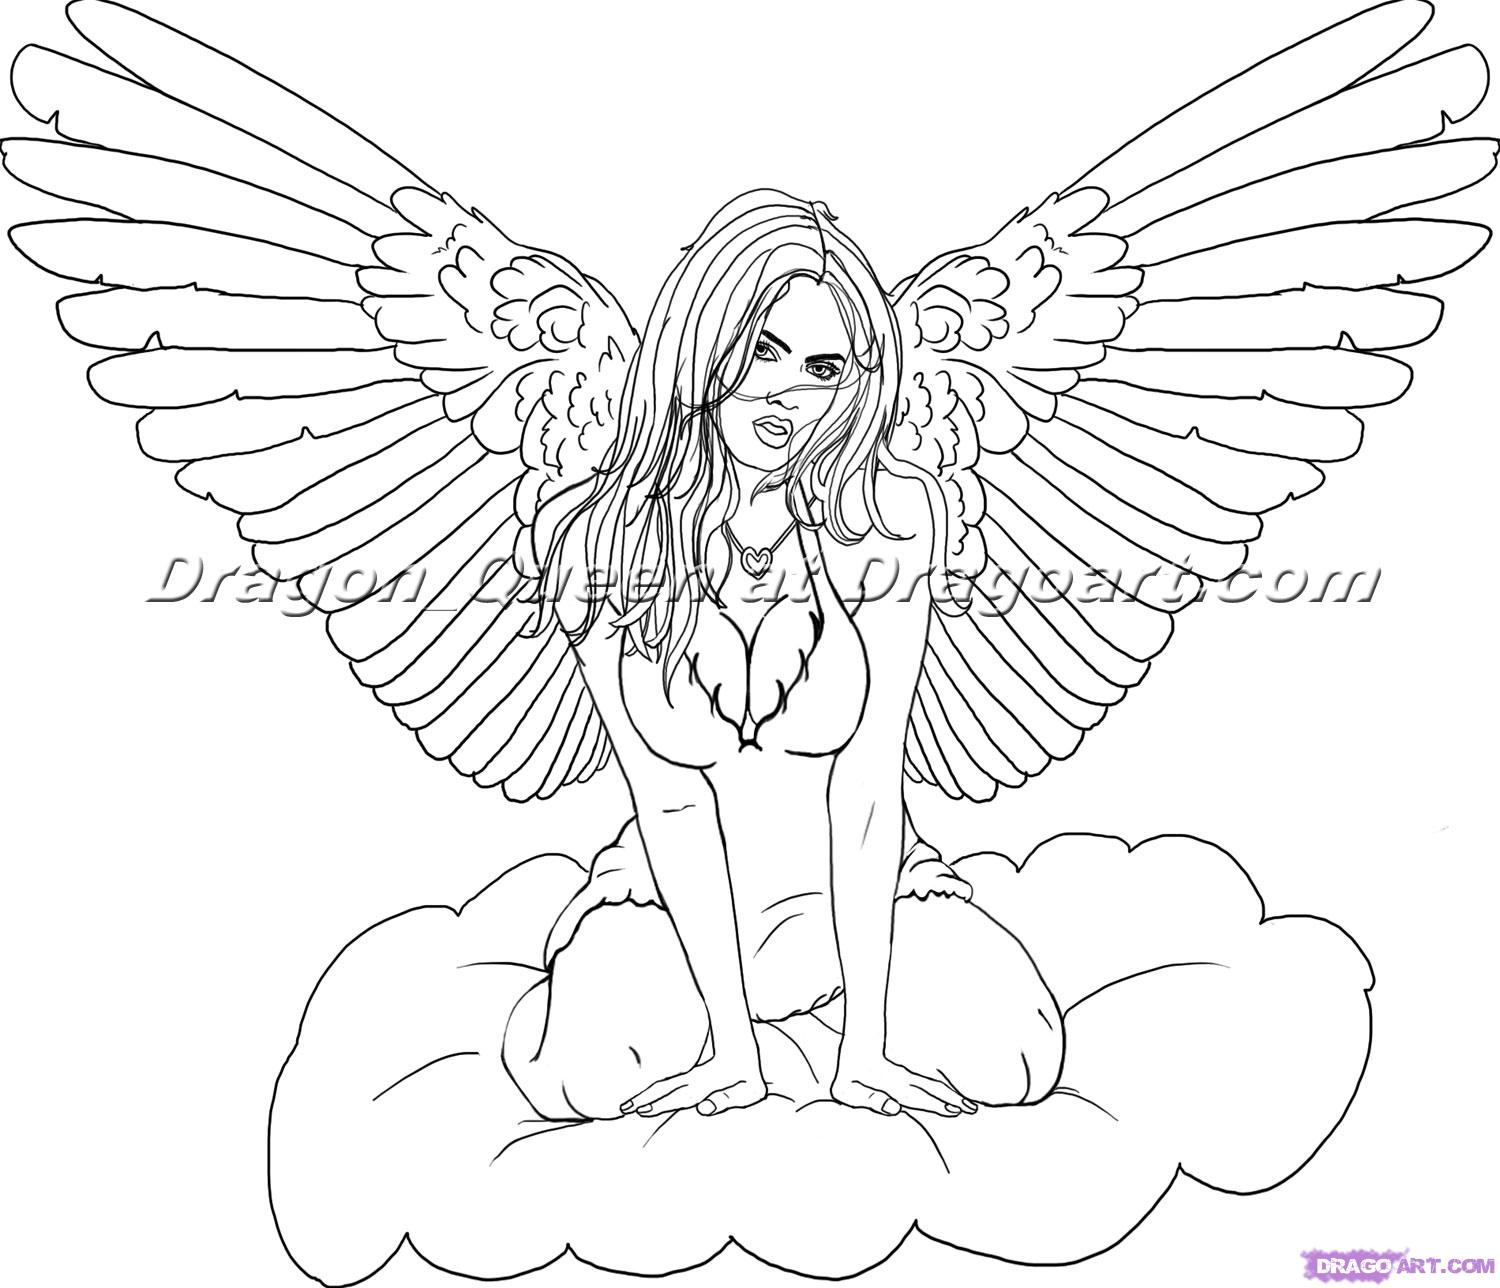 1500x1288 Sketch Graffiti Angels How To Draw An Angel, Step By Step, Tattoos